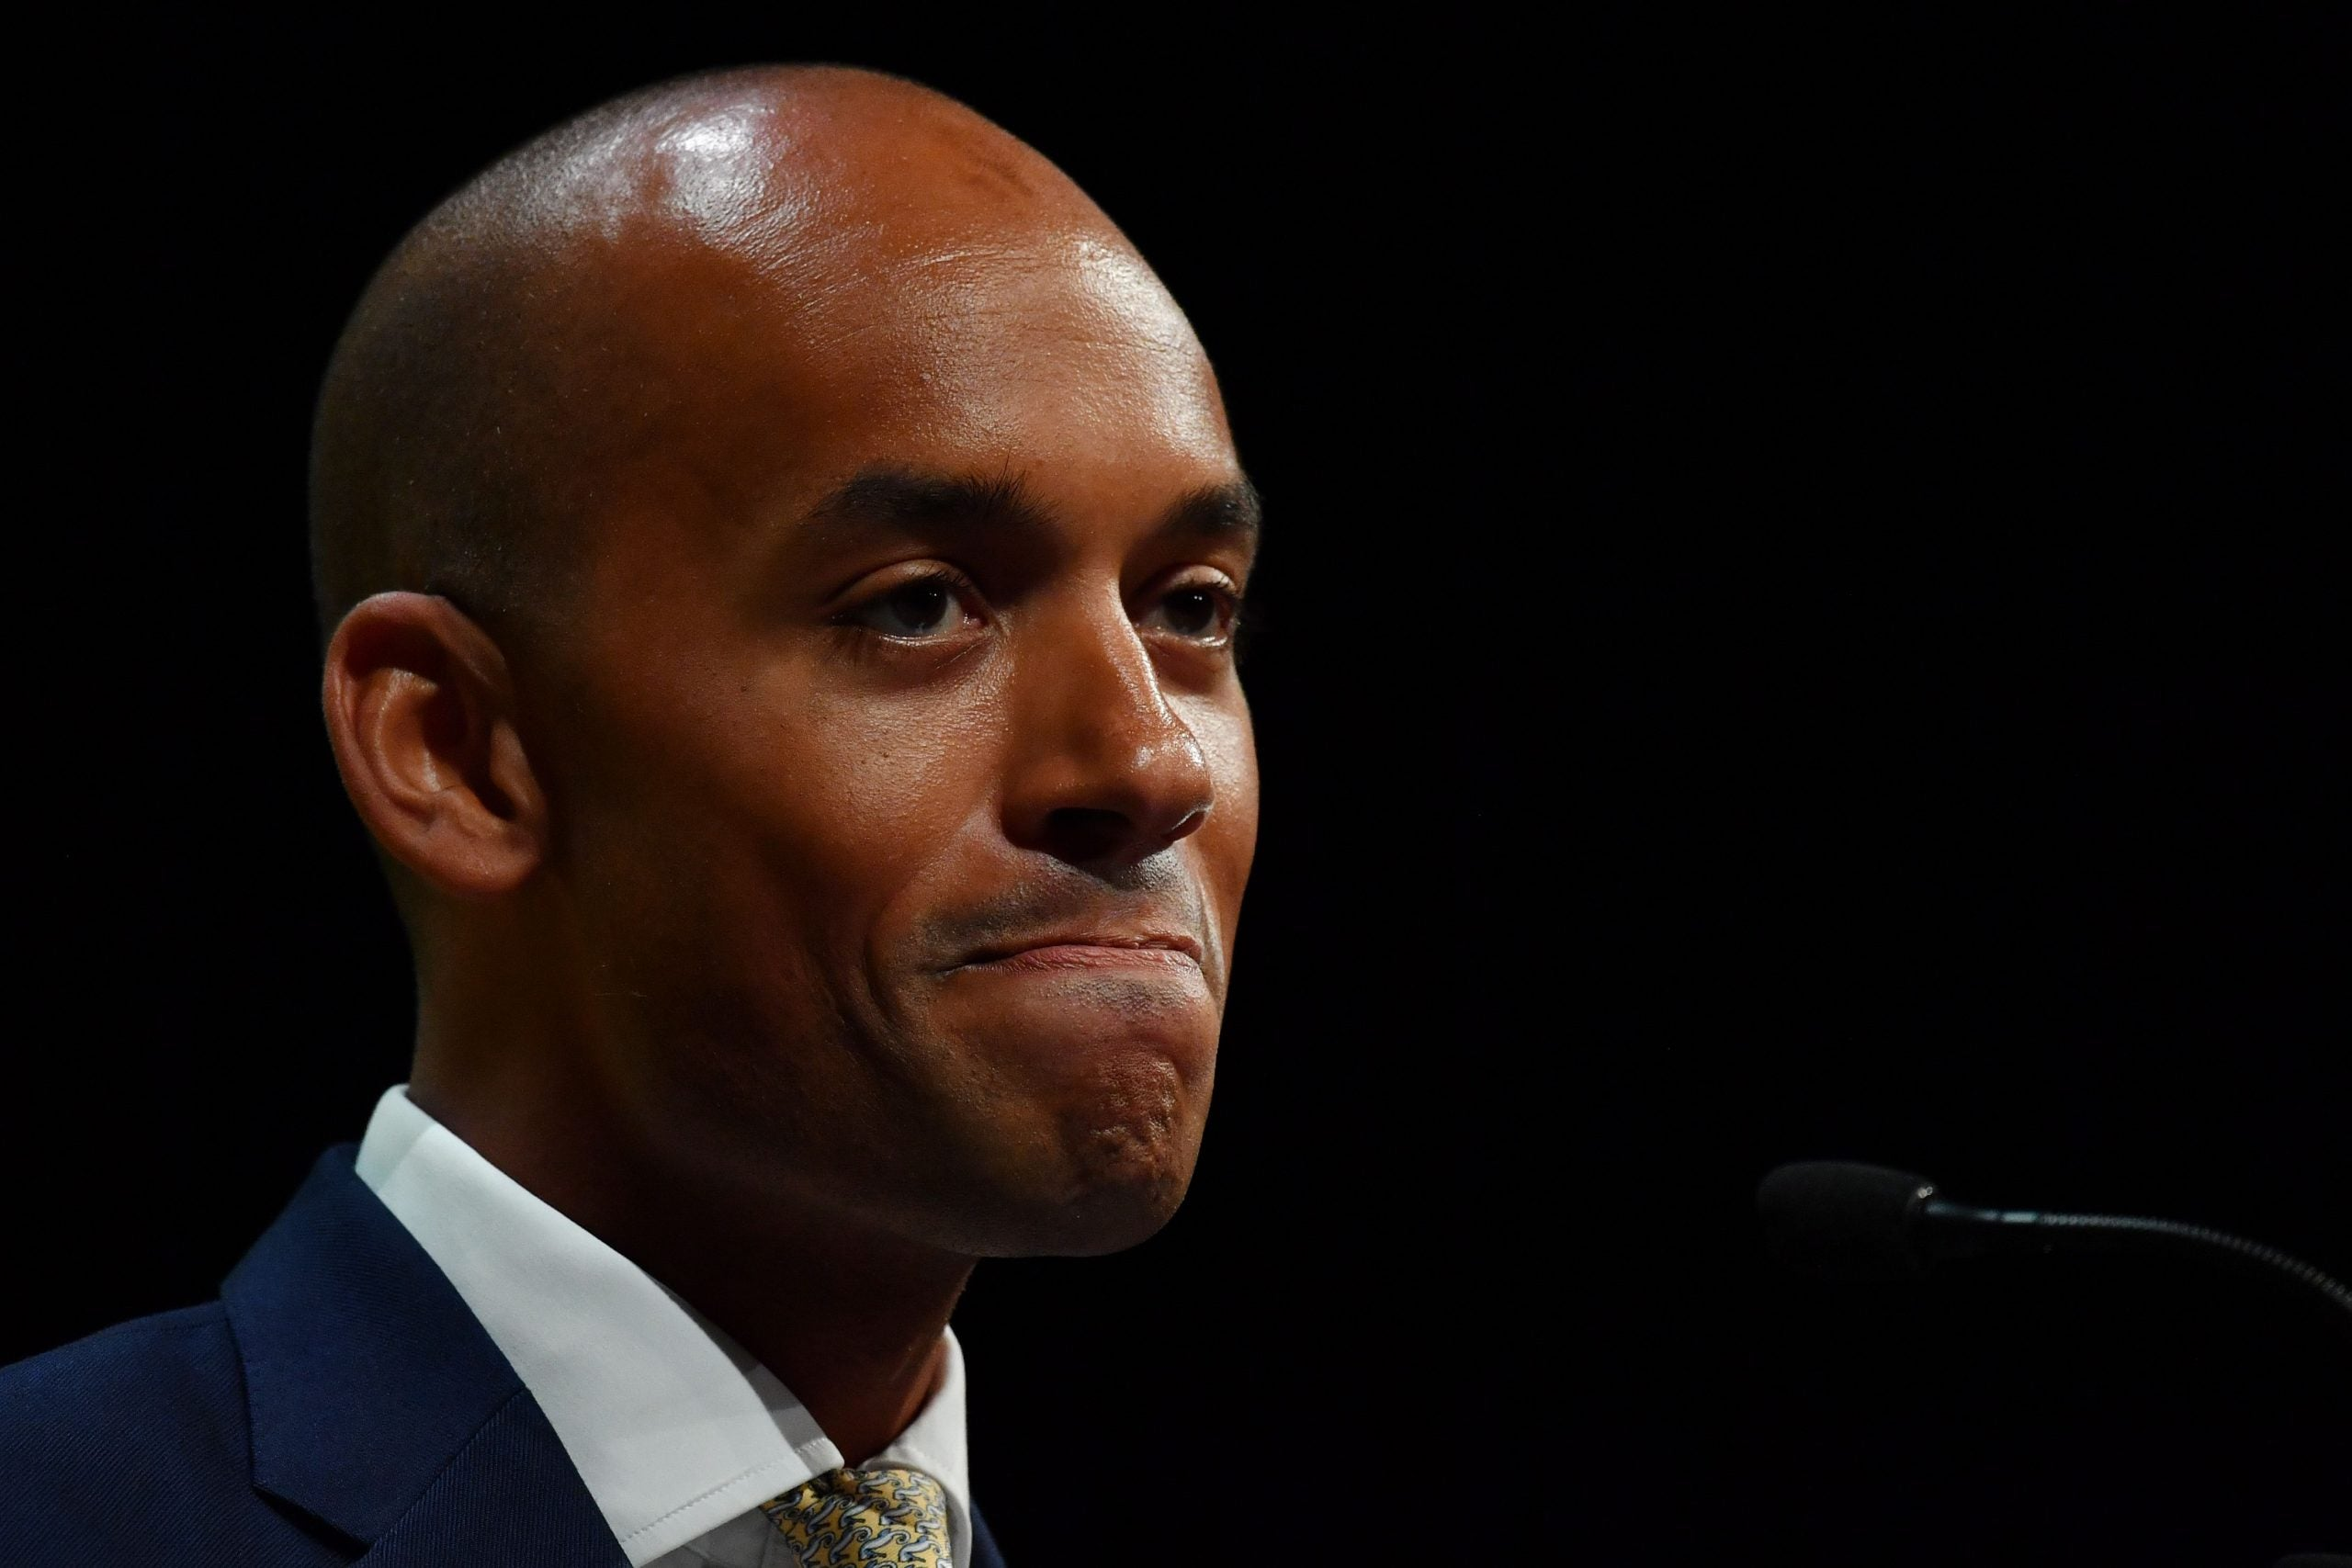 Chuka Umunna says the Lib Dems could win up to 200 seats. Is he right?